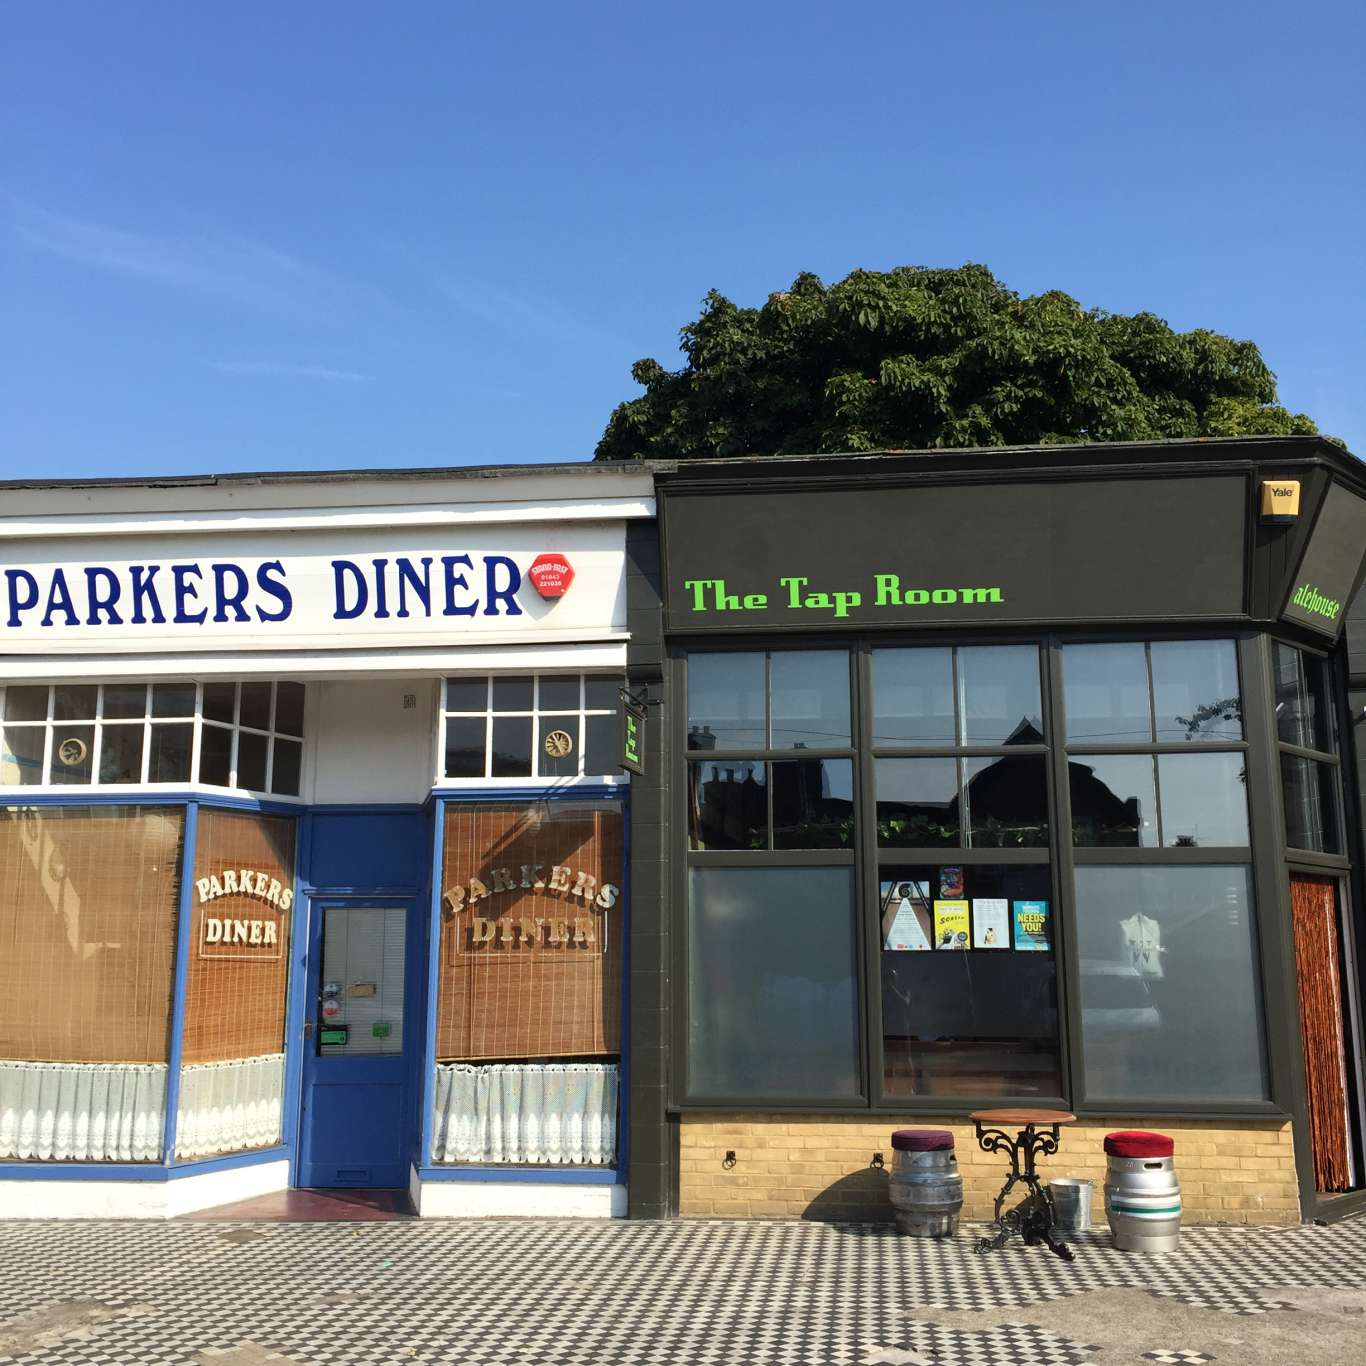 The Tap Room, off Northdown Road. Photo: Stephen Emms